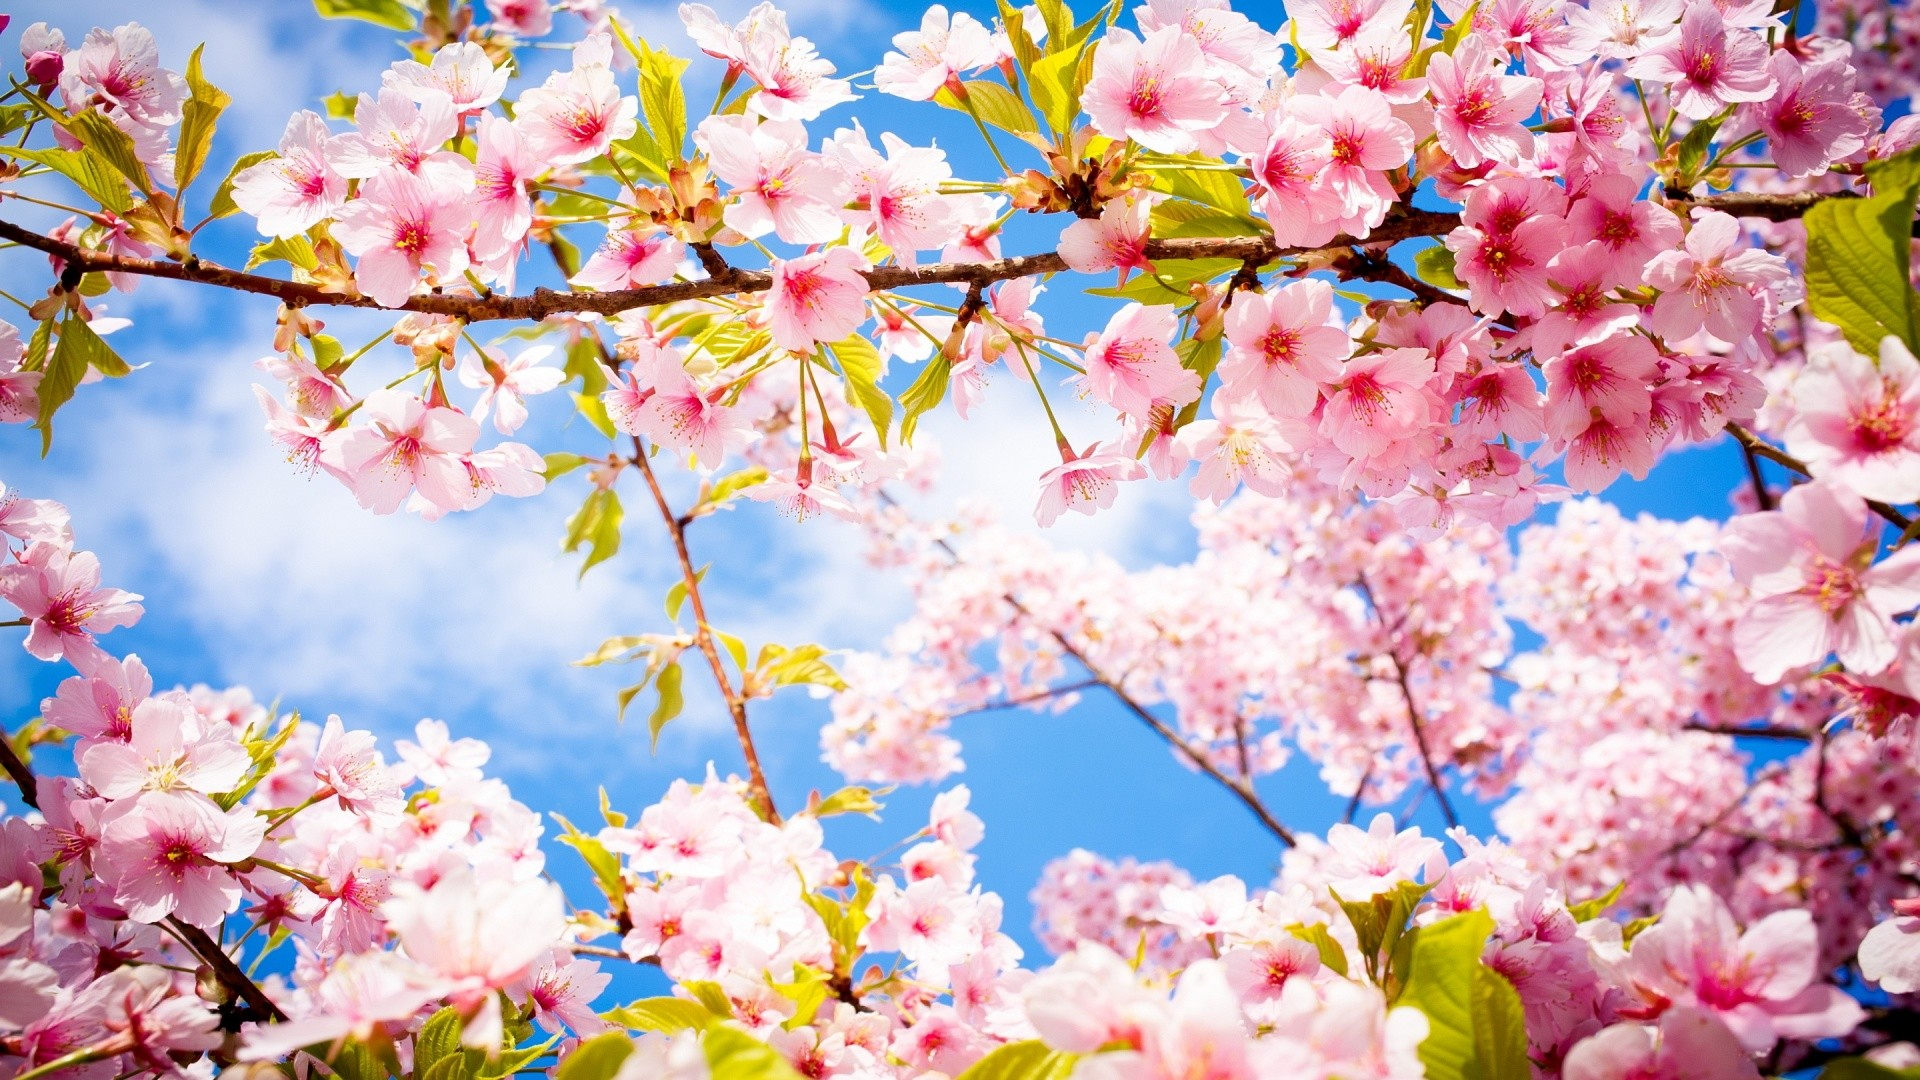 1920x1080 Lovely Cherry Blossom Wallpapers To Brighten Your Desktop